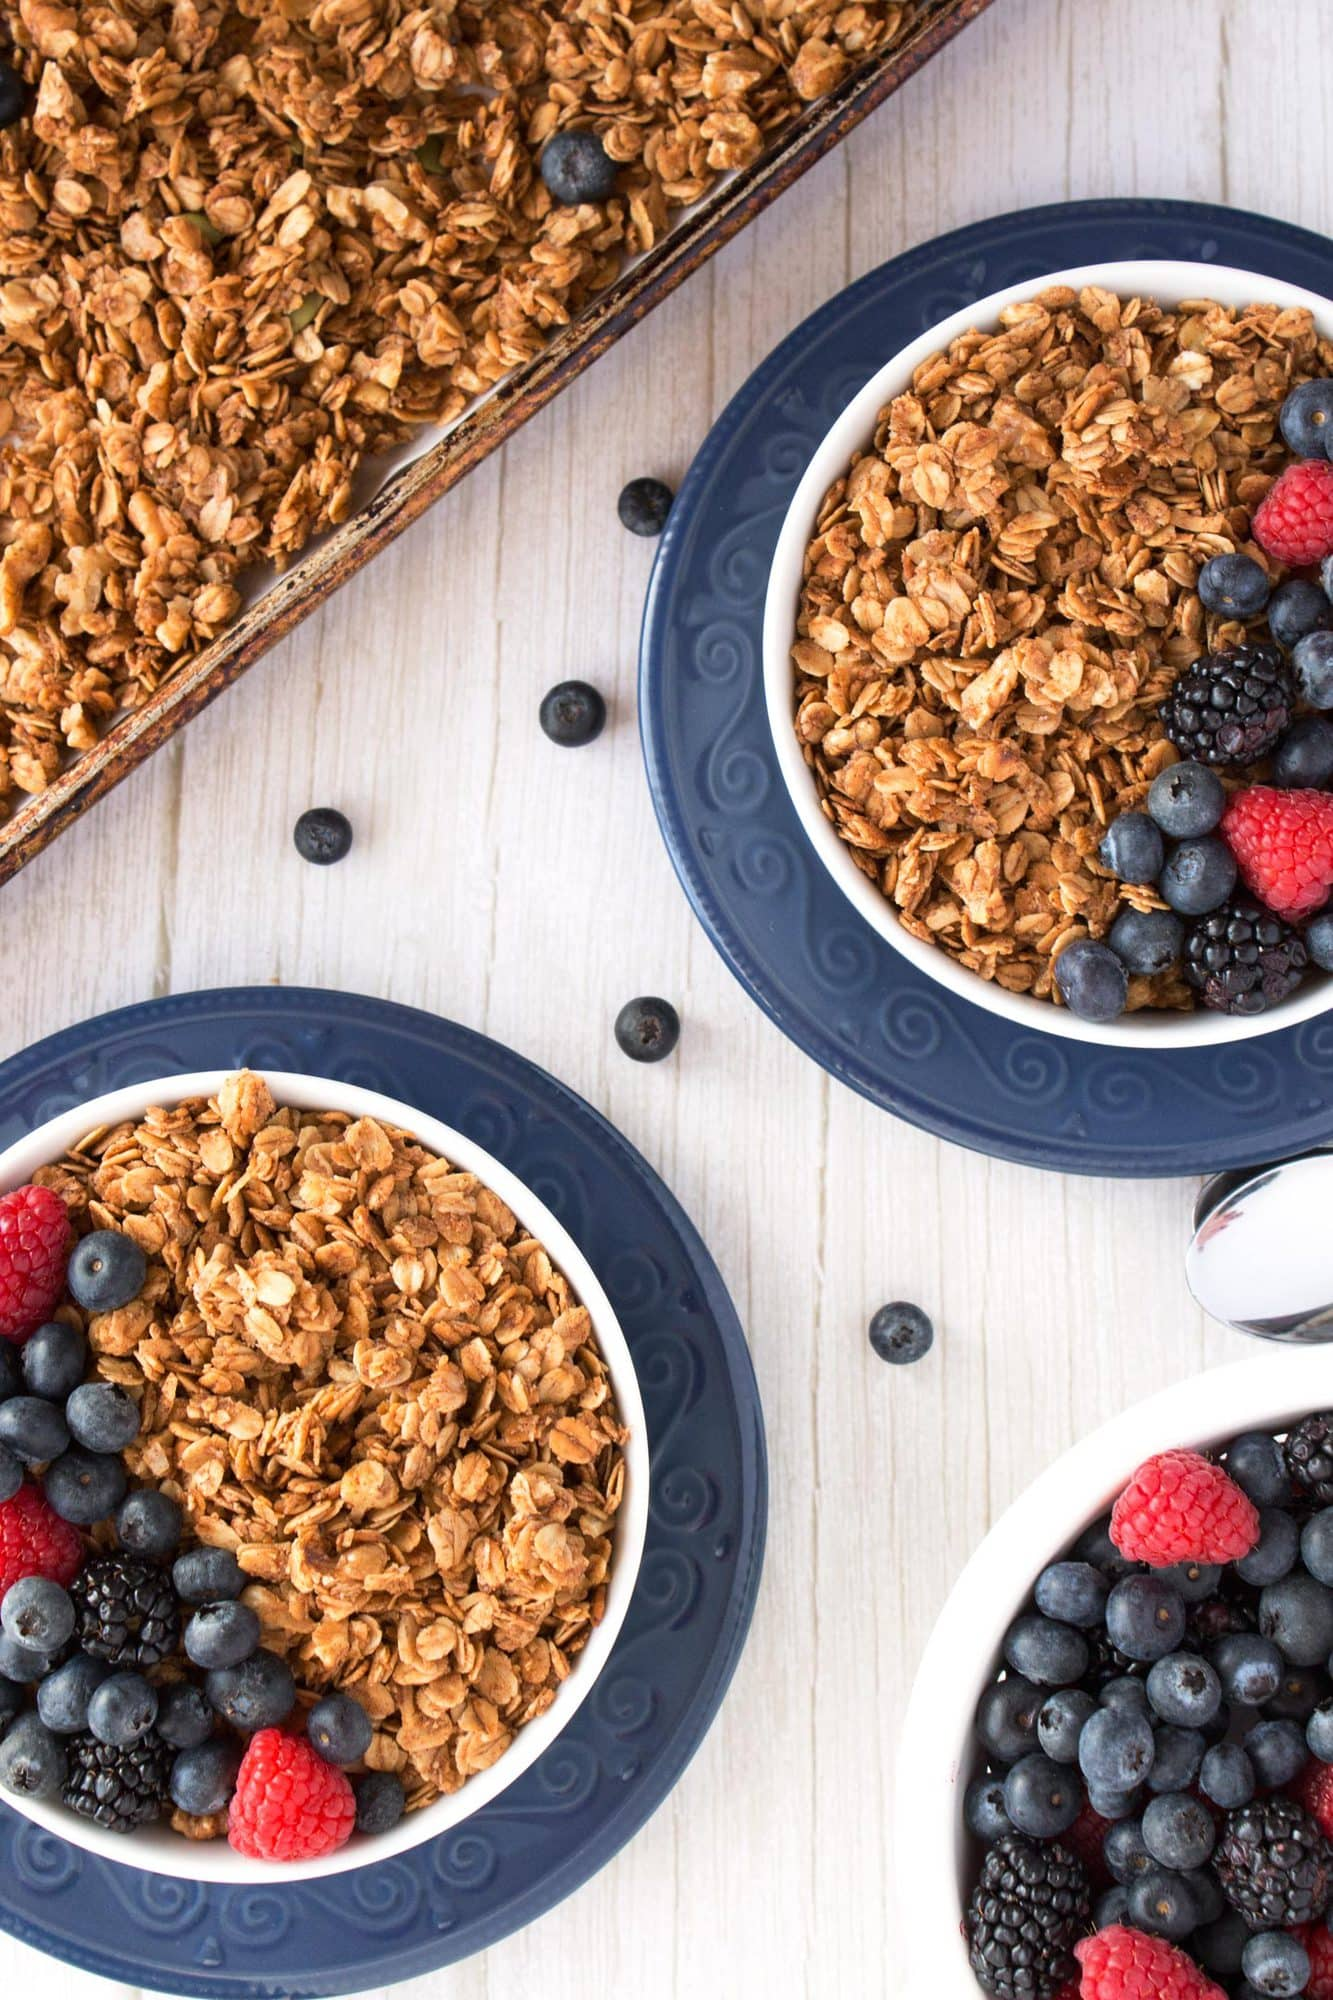 Overhead view of two bowls and sheet pan of homemade crunchy granola.